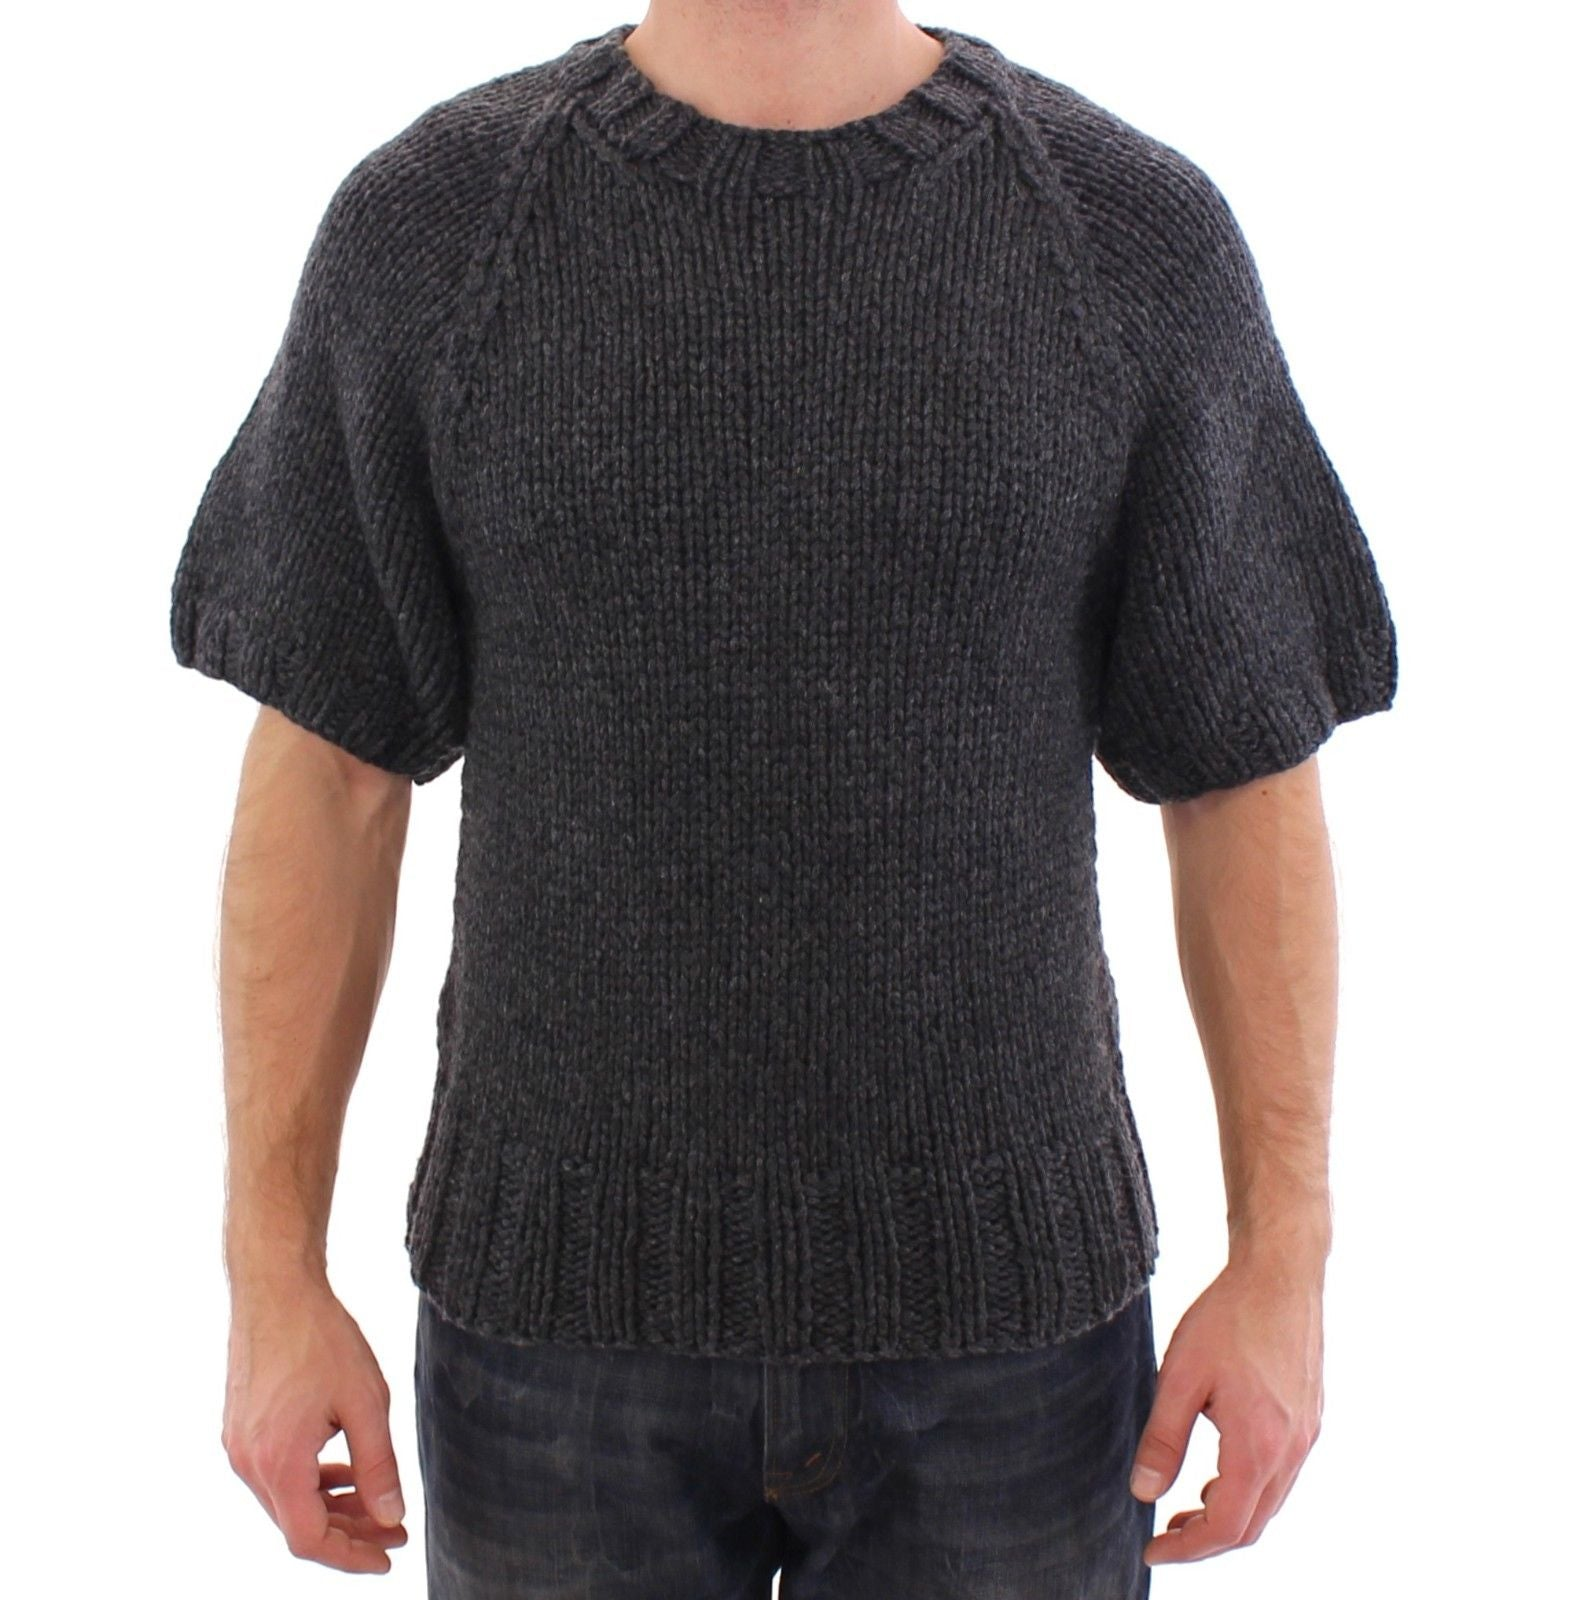 Image of Dolce & Gabbana Gray Cashmere Knitted Shortsleeved Sweater